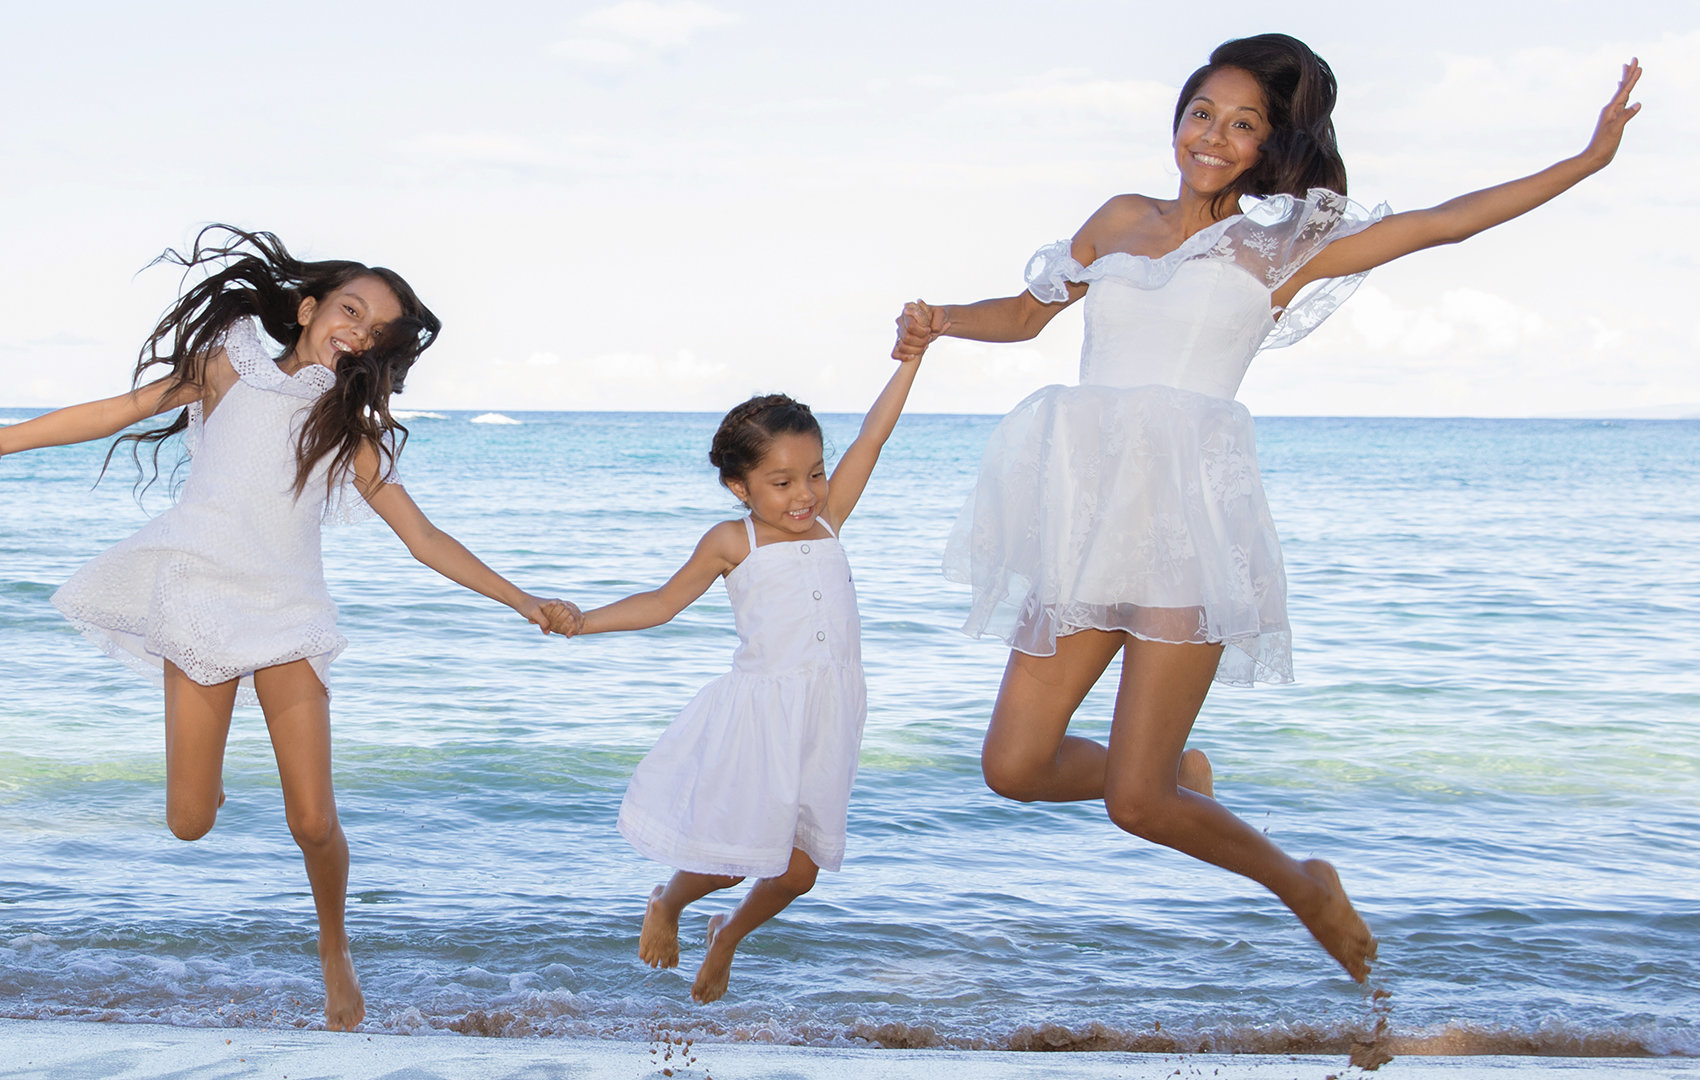 Family photographers on Maui | Kauai | Oahu | Big Island